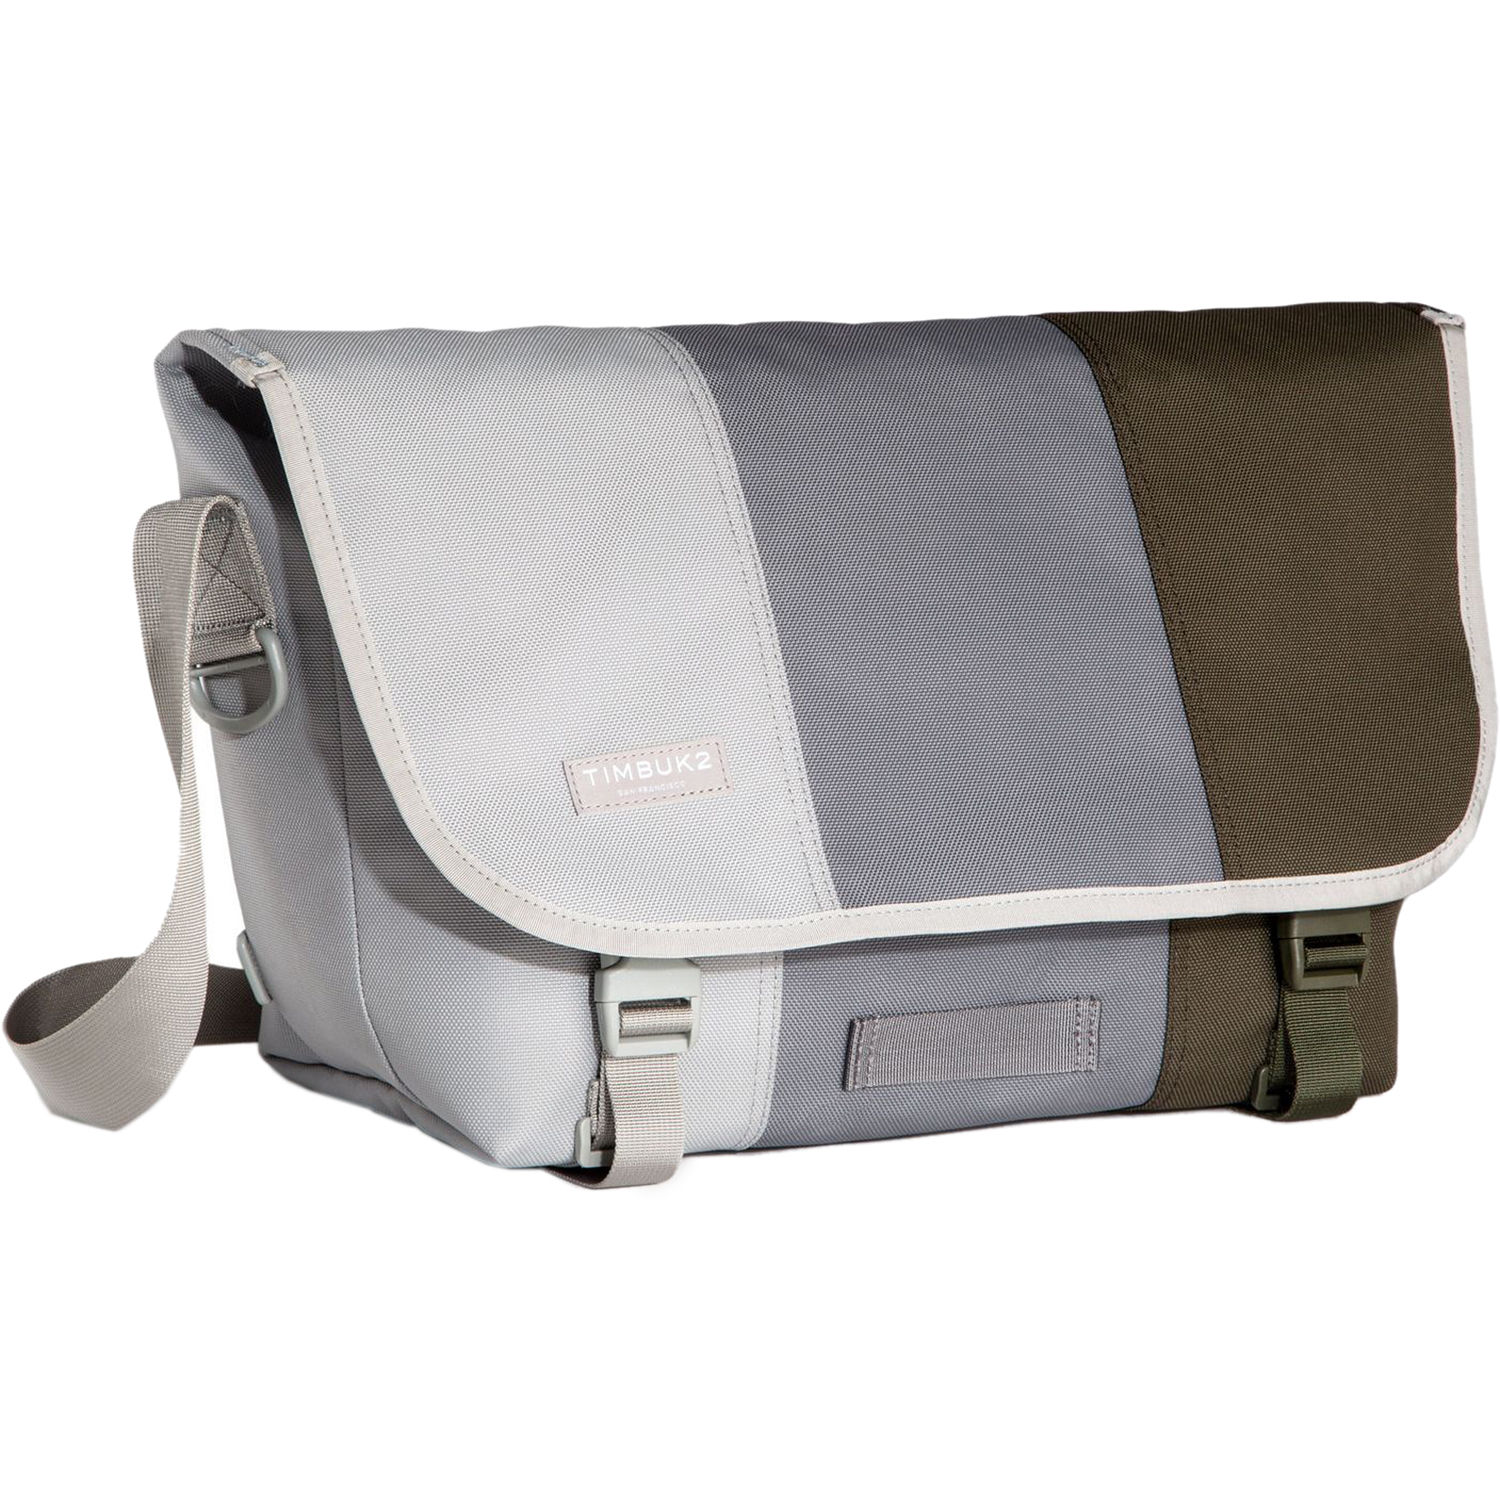 bb094b4624 Timbuk2 Tres Colores Classic Messenger Bag 1974-4-1316 B H Photo